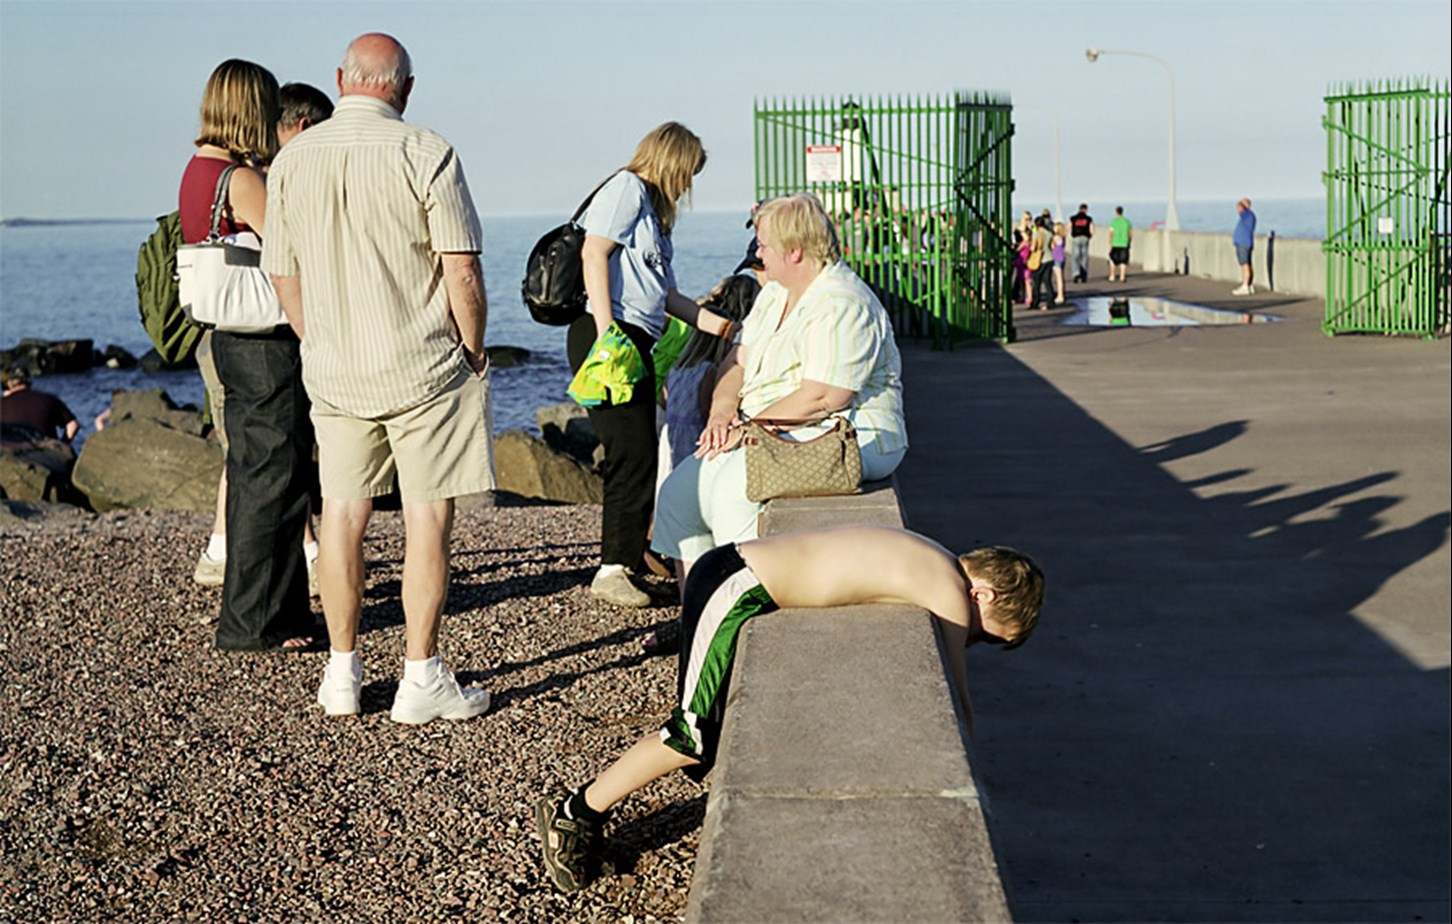 A Boy Lays On A Ledge, Duluth, Minnesota, August 2010